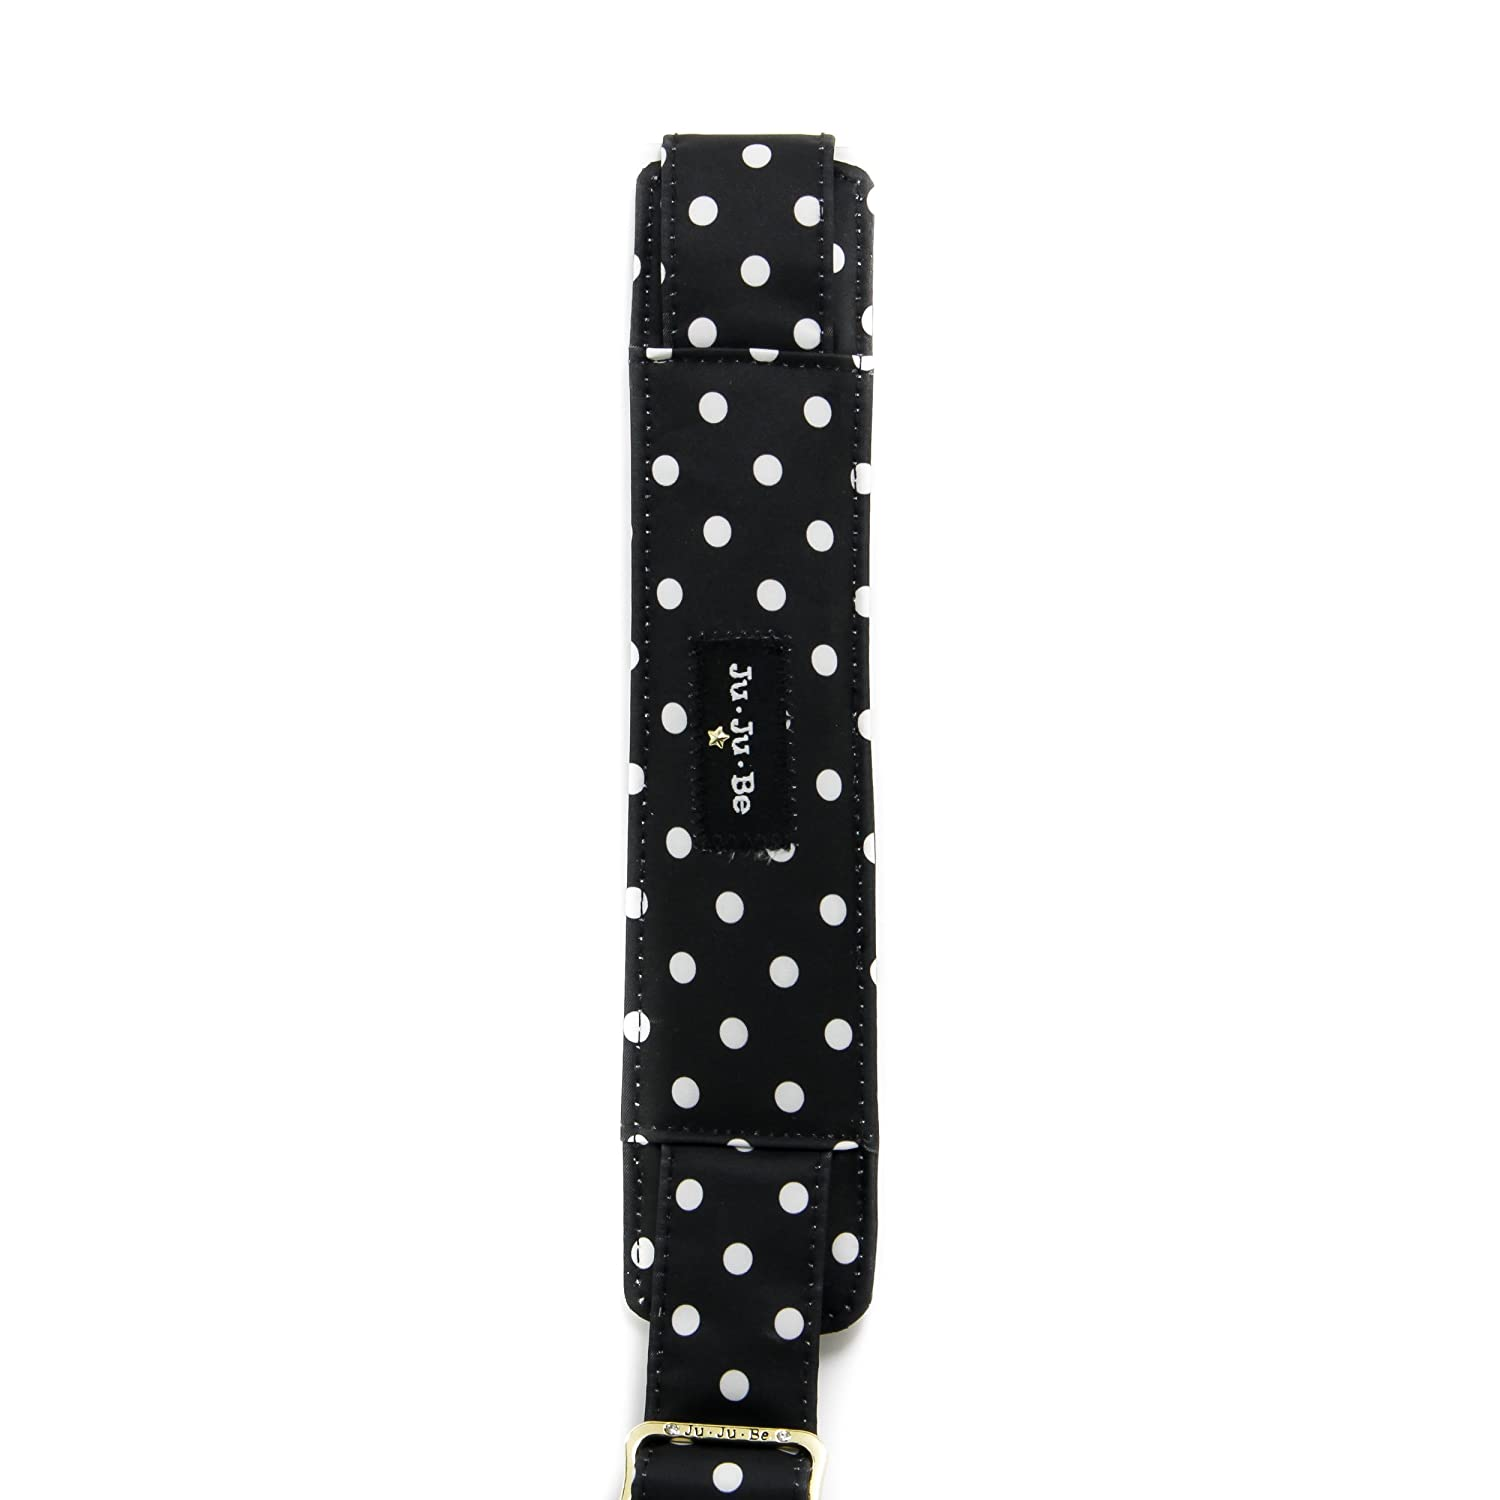 JuJuBe Messenger Strap, Legacy Collection - The Duchess - Black with White Polka Dots